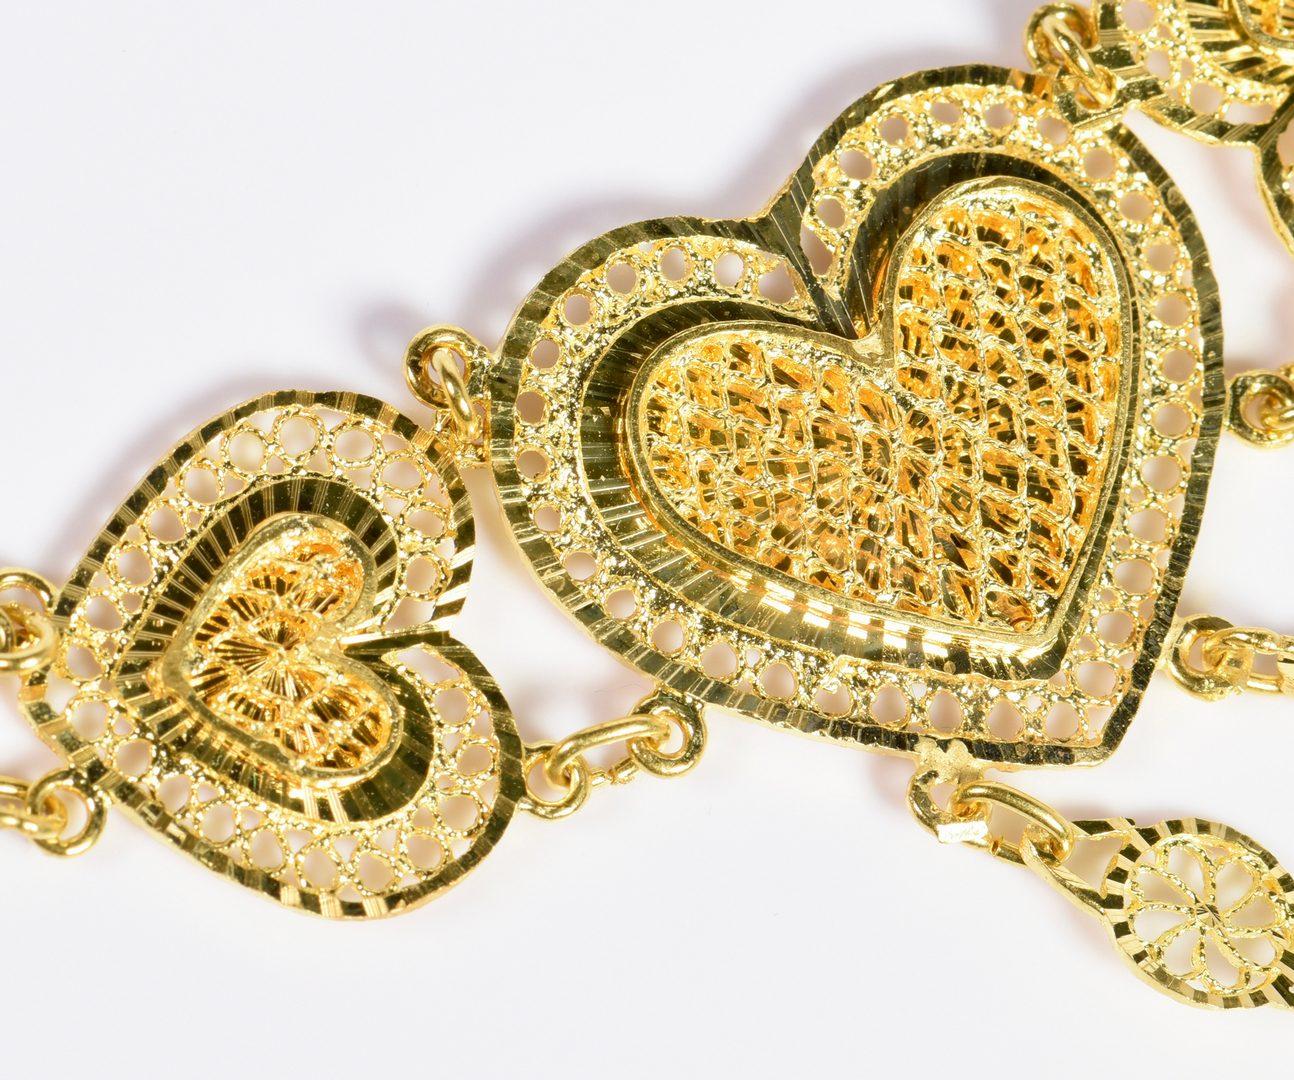 Lot 778: 21K Gold Filigree Heart Jewelry 3-pc Set